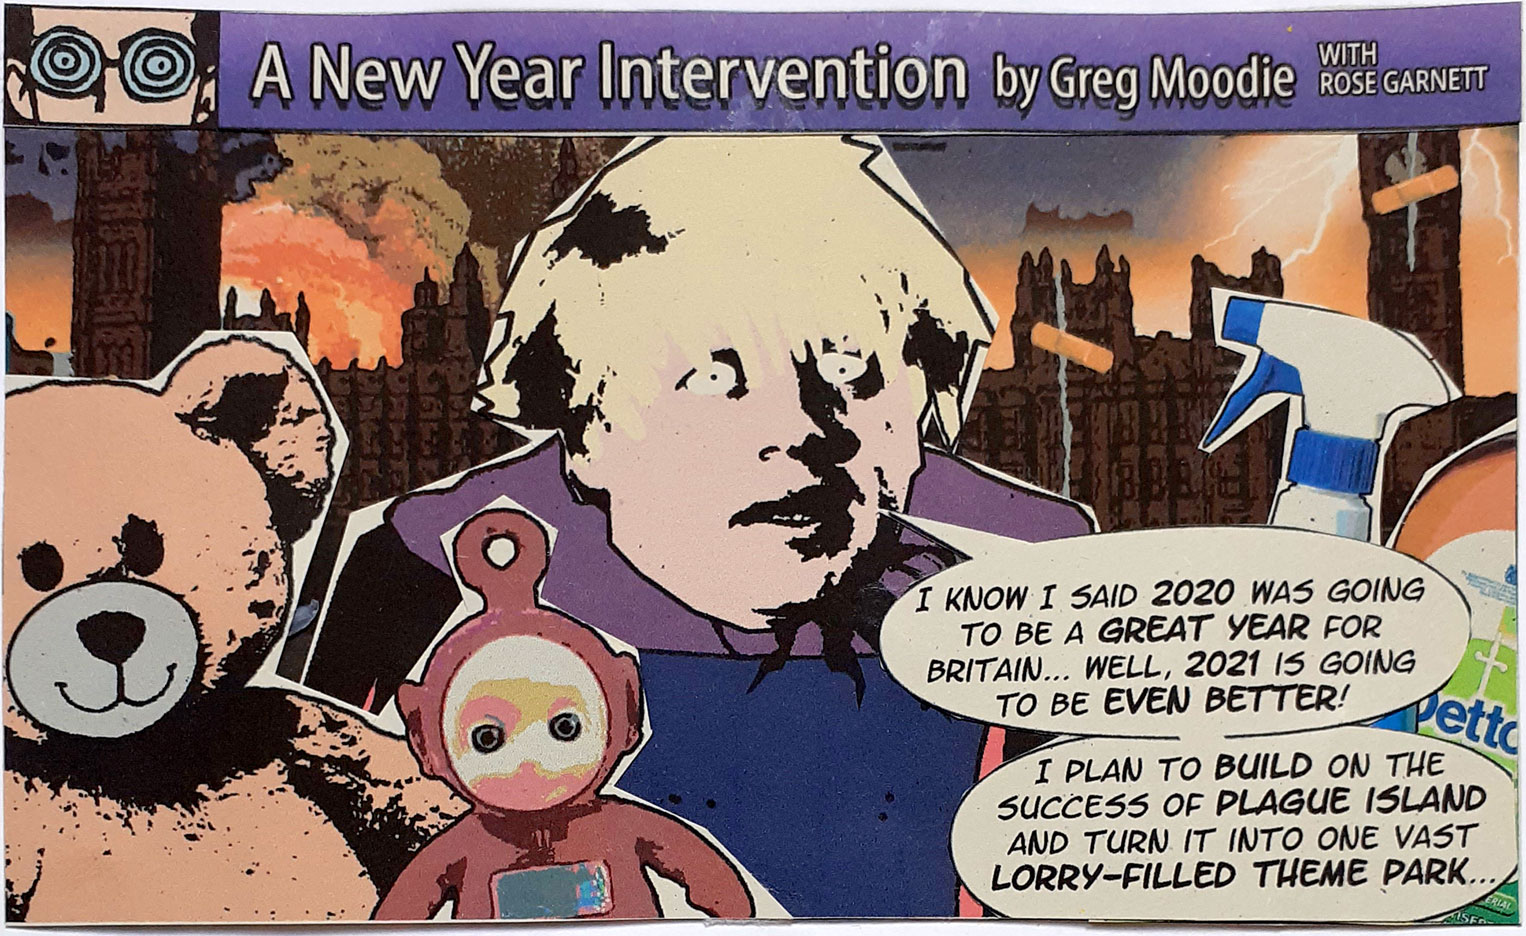 A New Year Intervention